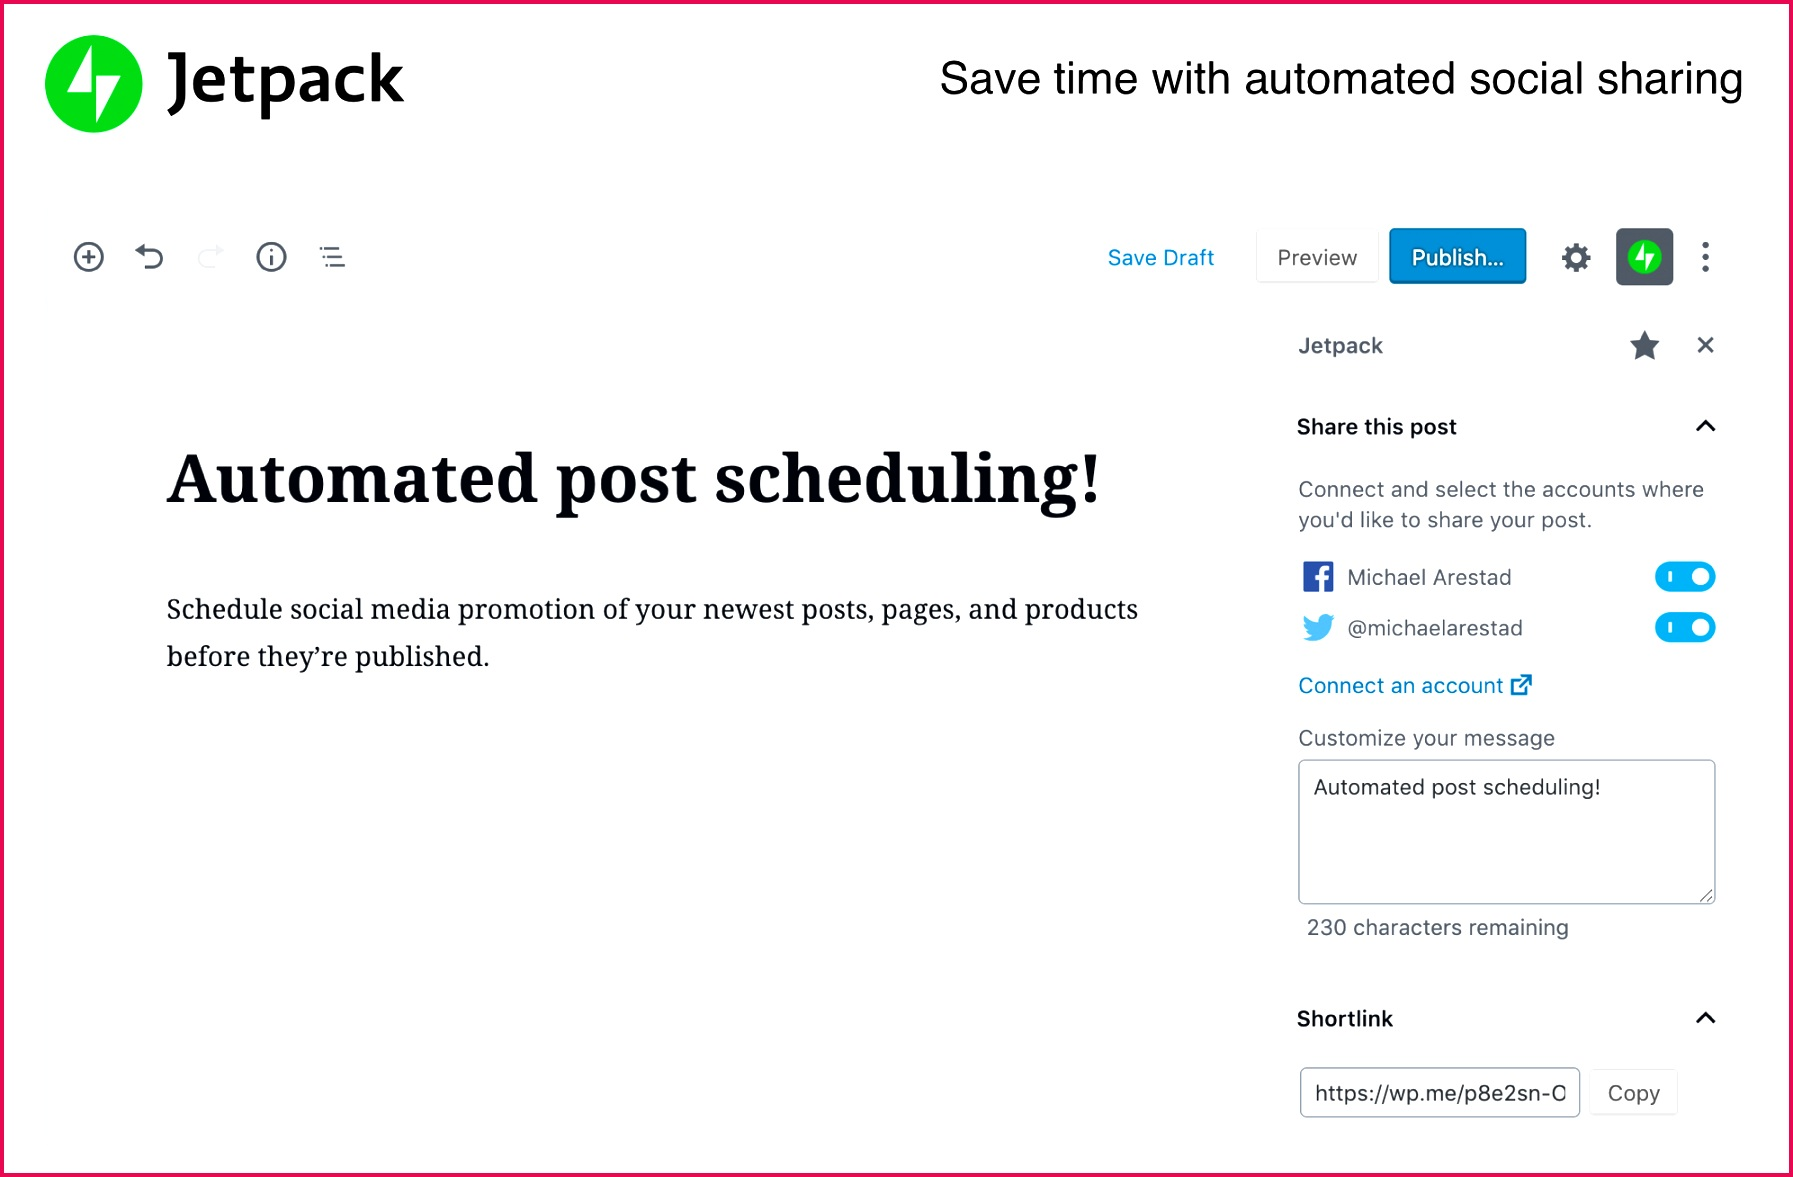 Promote your newest posts pages and products across your social media channels